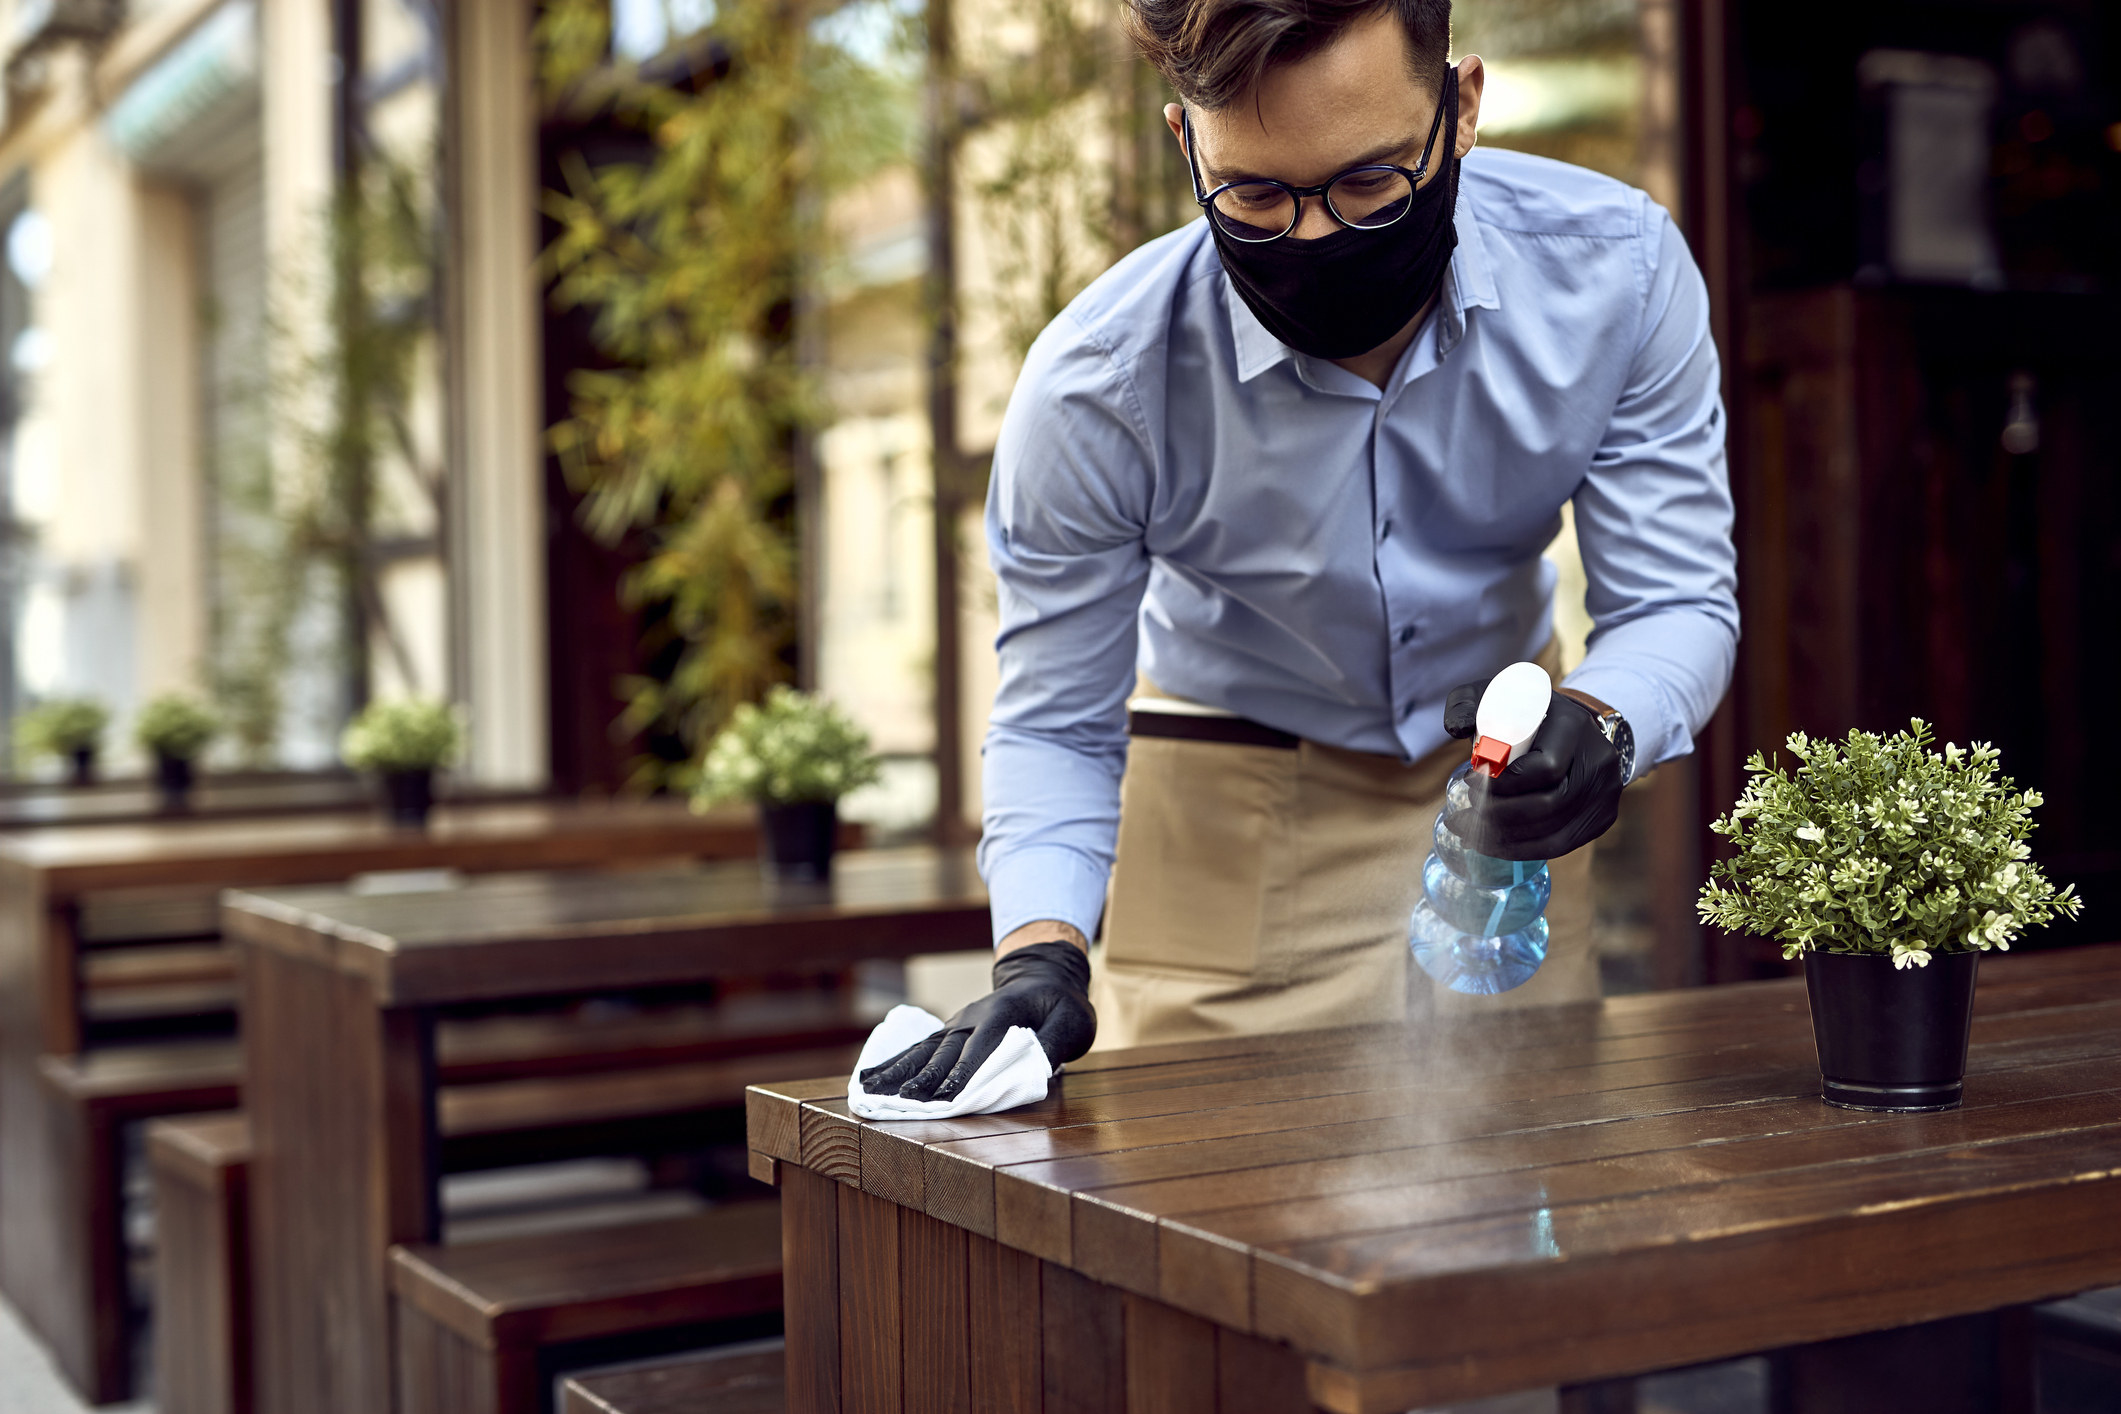 A waiter wiping down an outdoor table